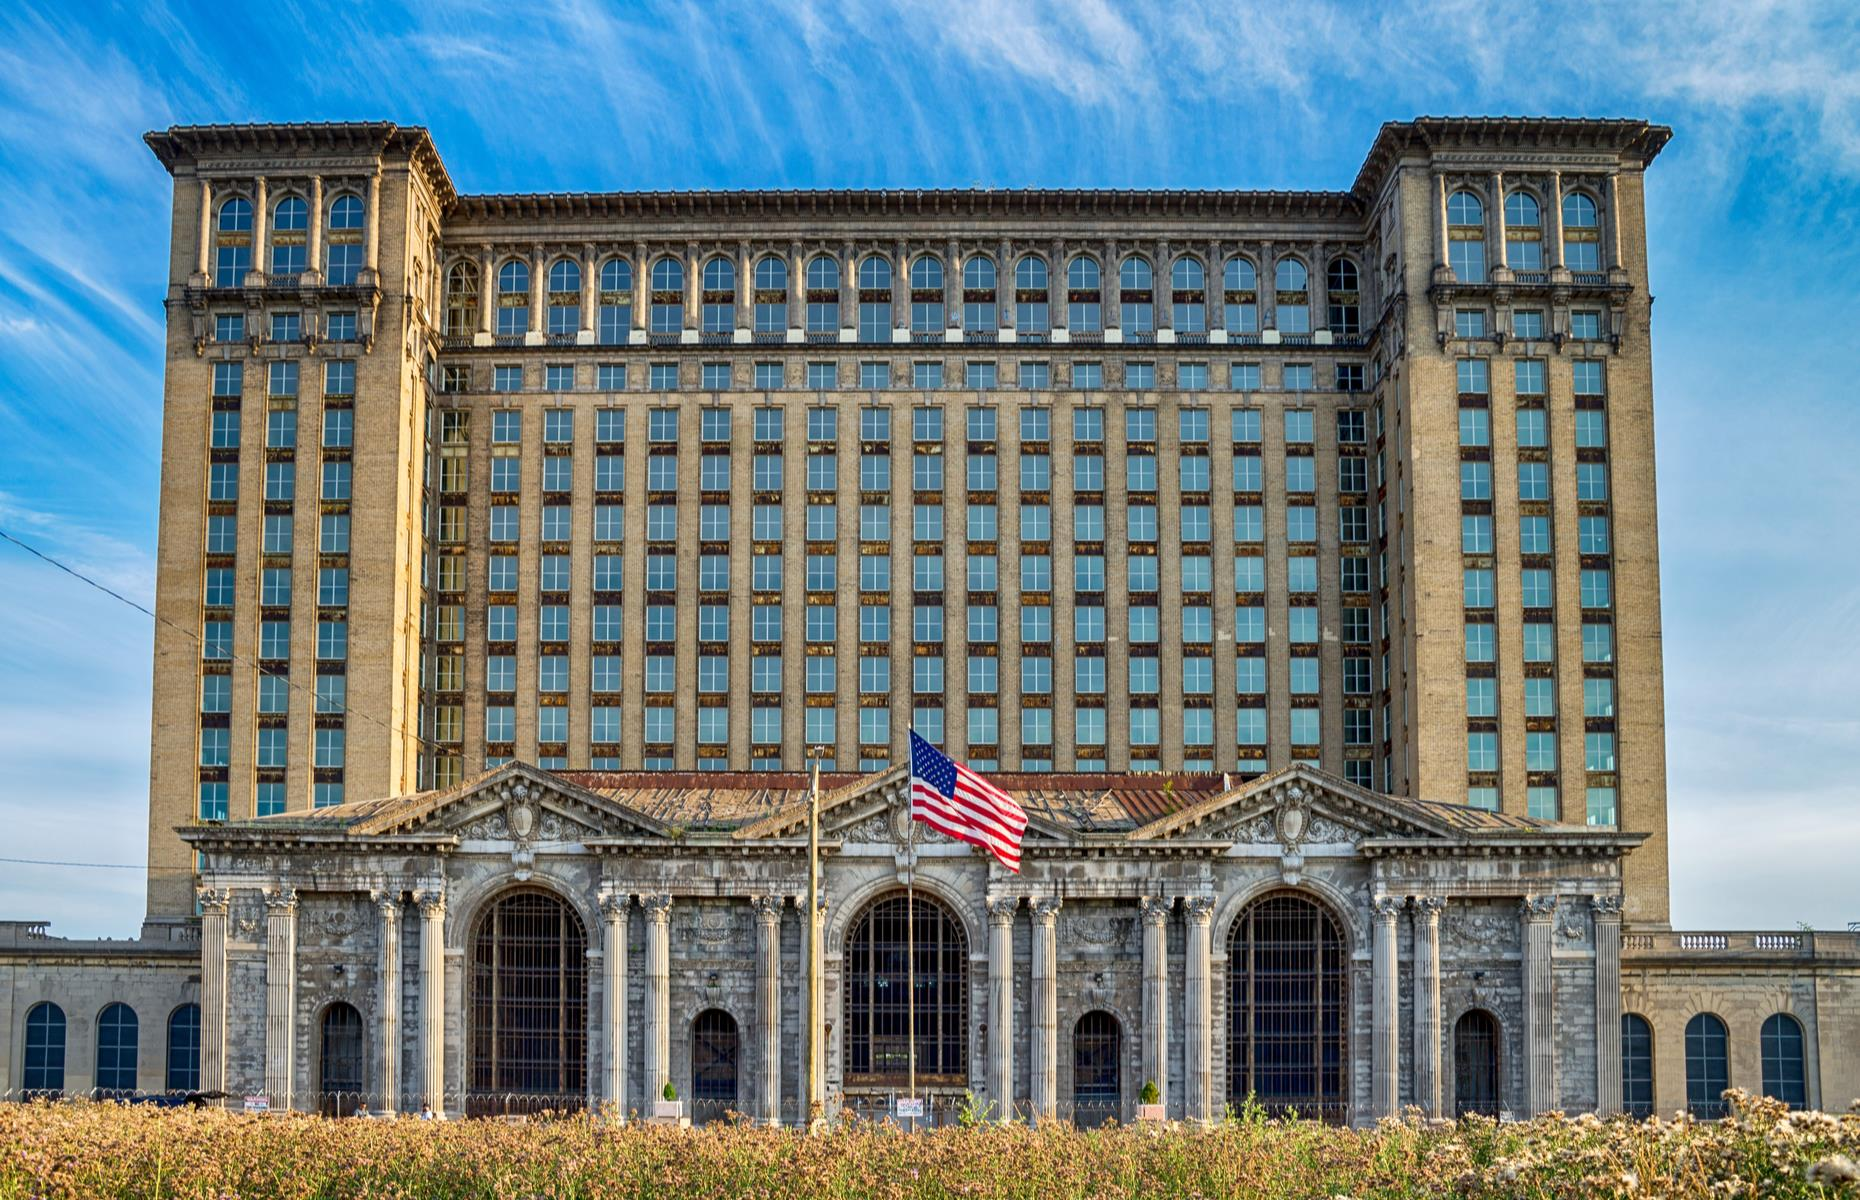 Slide 2 of 33: Since it opened in 1913, this vast train station has towered over Detroit's historic Corktown neighborhood. But in more recent decades, it became a symbol of the city's decline. The former intercity passenger rail depot was built for the Michigan Central Railroad, but after Amtrak finally stopped using the station, it was closed in the late 1980s and left empty. However, hope has returned as the historic building has recently been bought by the Ford Motor Company.